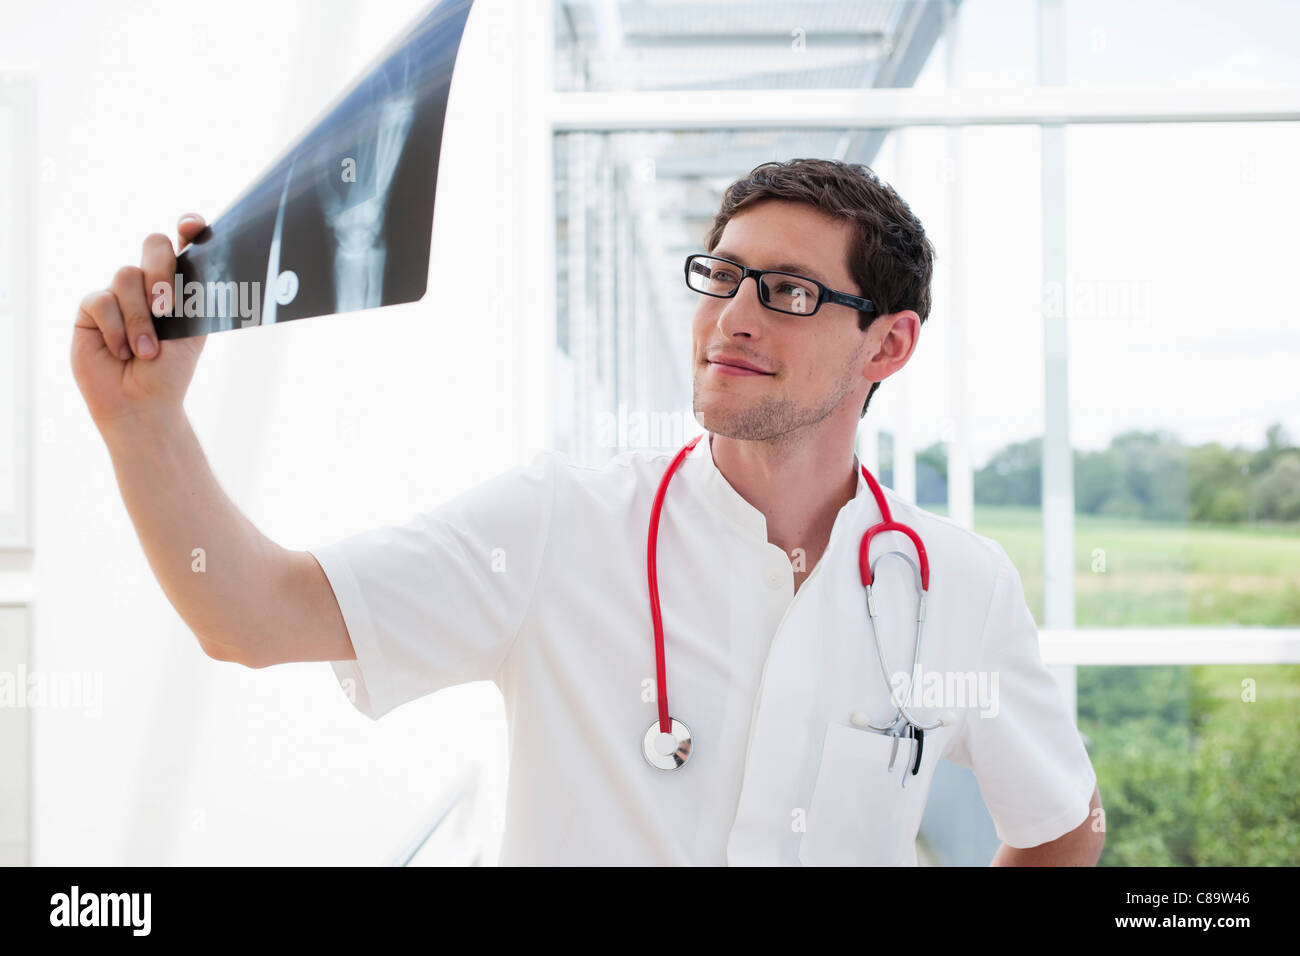 Germany, Bavaria, Diessen am Ammersee, Young doctor examining x-ray, smiling Photo Stock